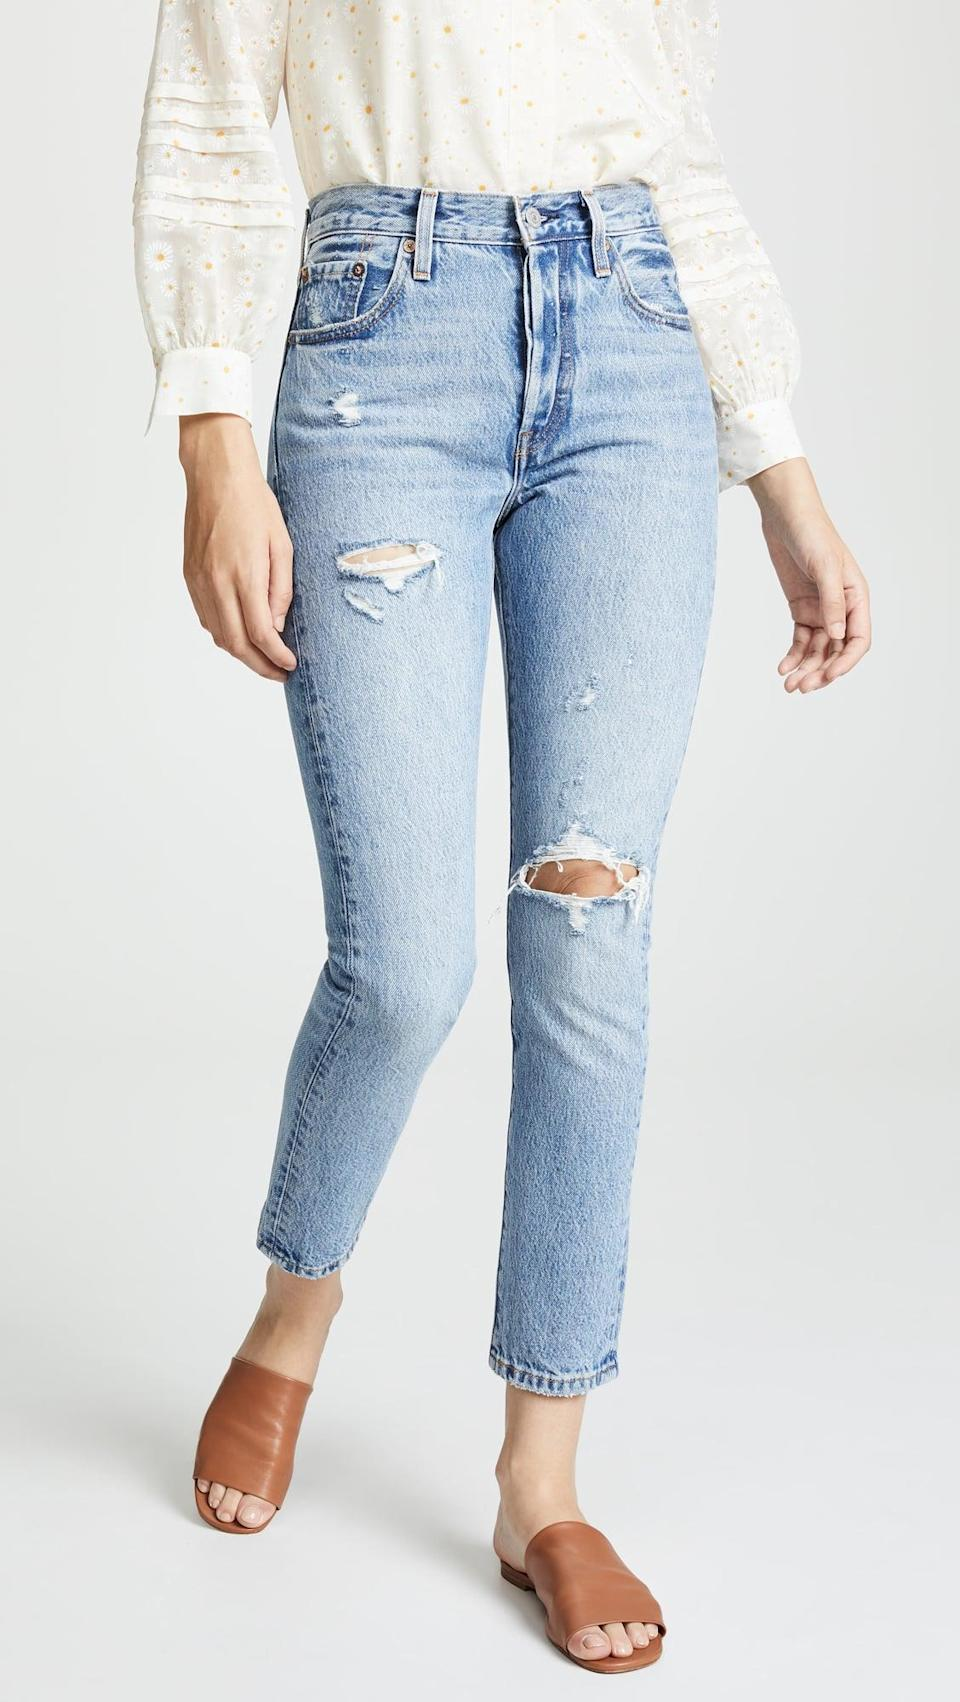 <p>These classic and timeless <span>Levi's 501 Skinny Jeans</span> ($98) are always a good idea. The distressed look is cool and easy to style.</p>